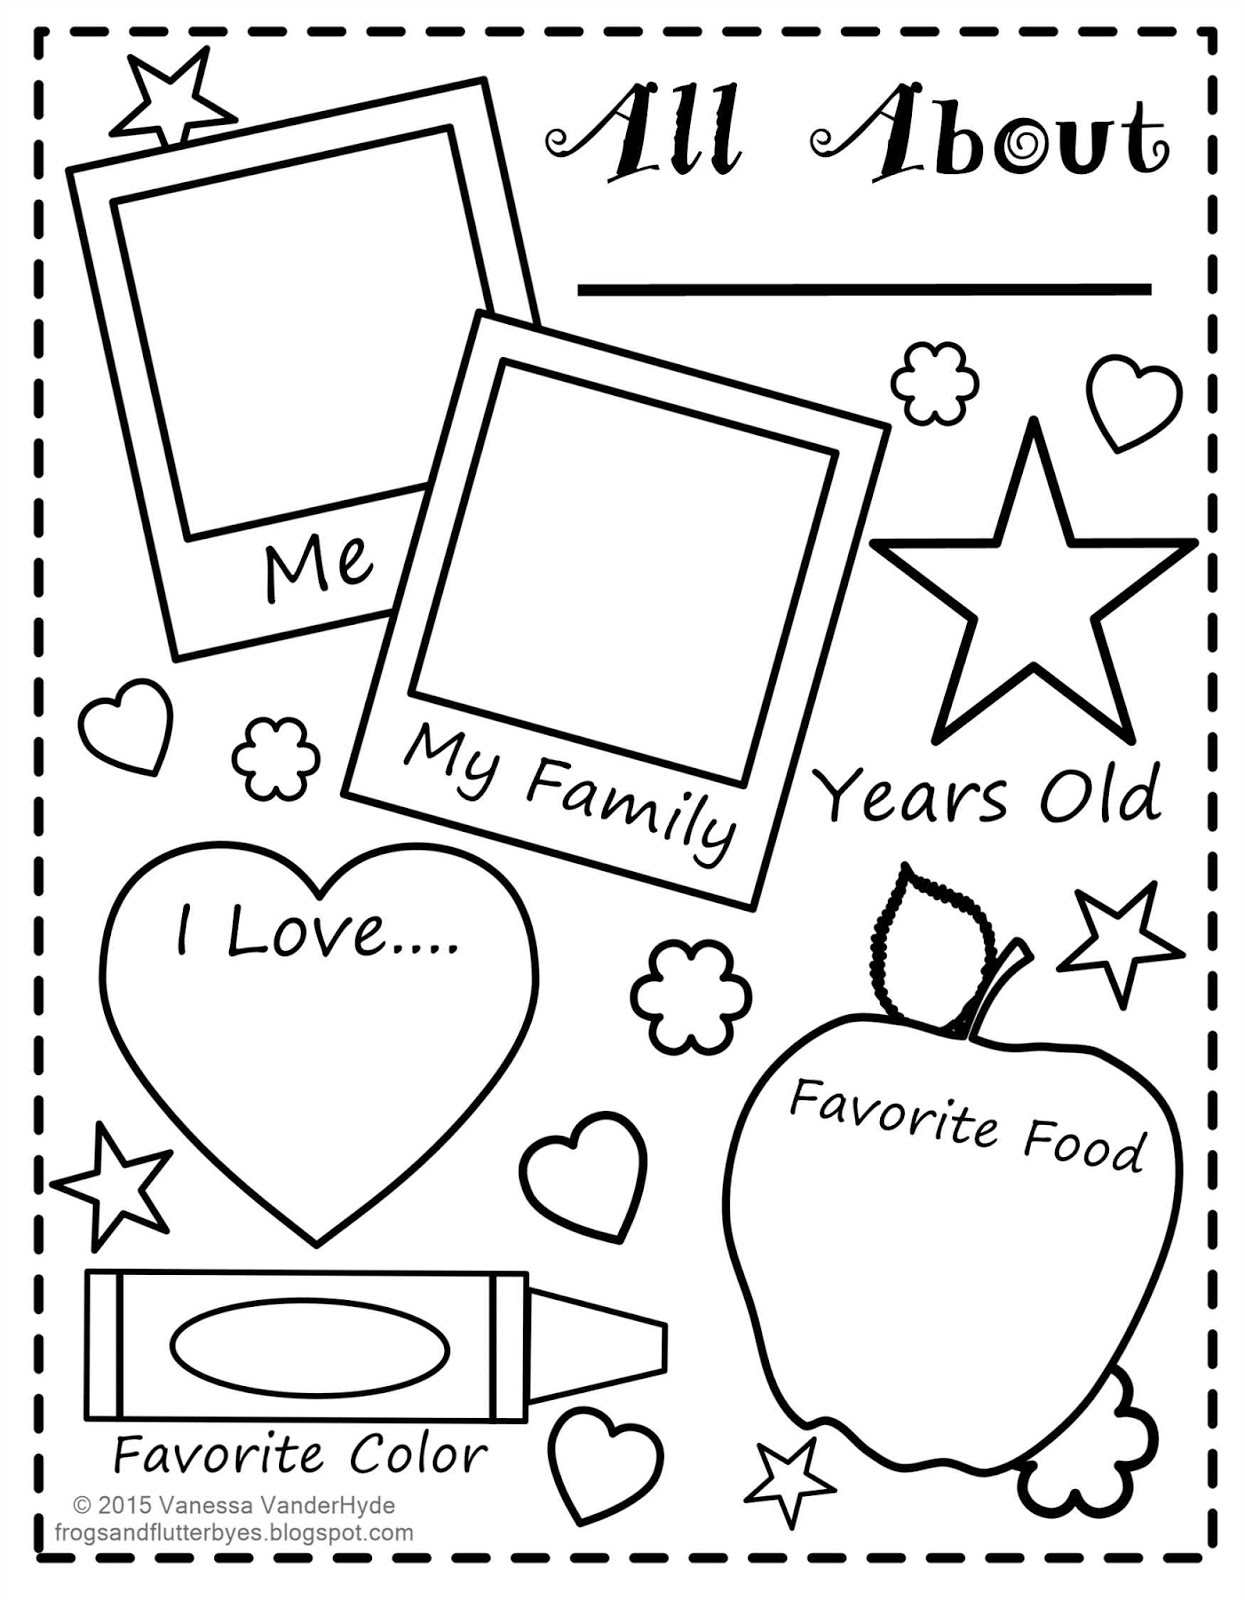 photo relating to Printable All About Me named The Frogs and the Flutterbyes: All Regarding Me Free of charge Printable